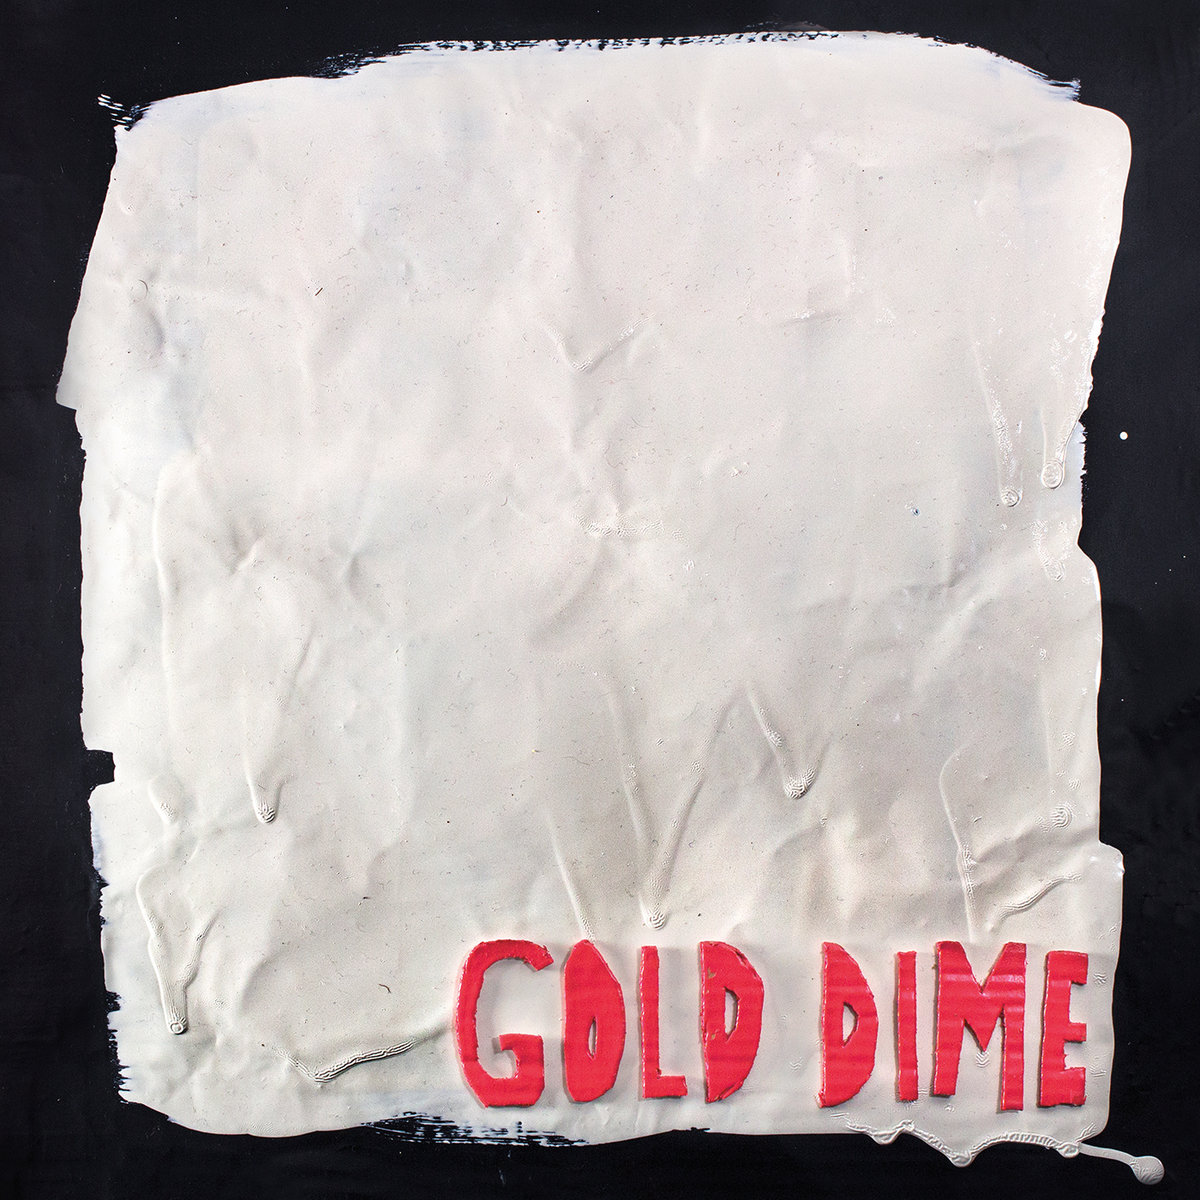 4 Hours From Nerves By Gold Dime